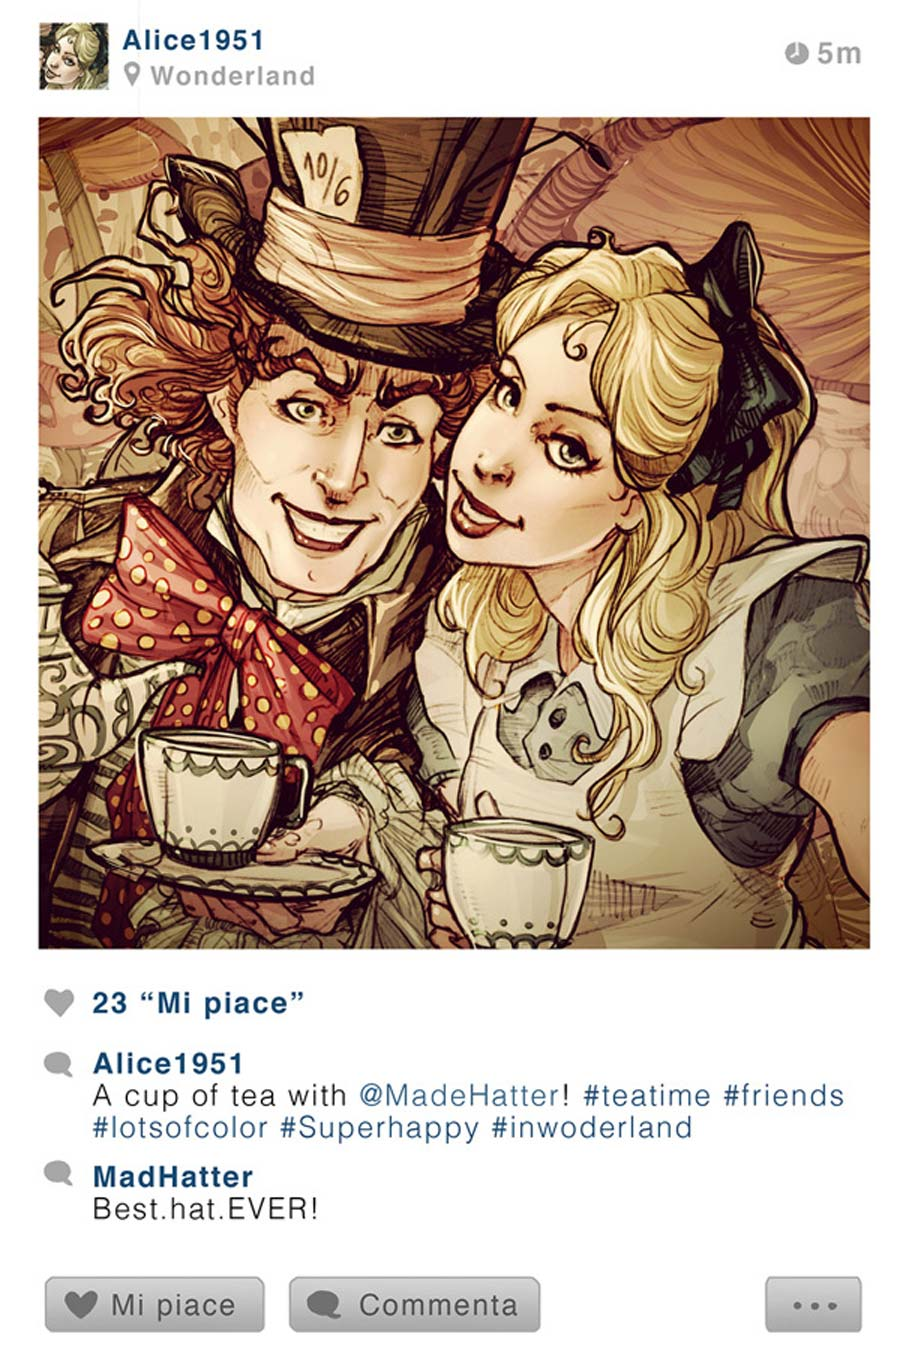 disney-instagram-alice